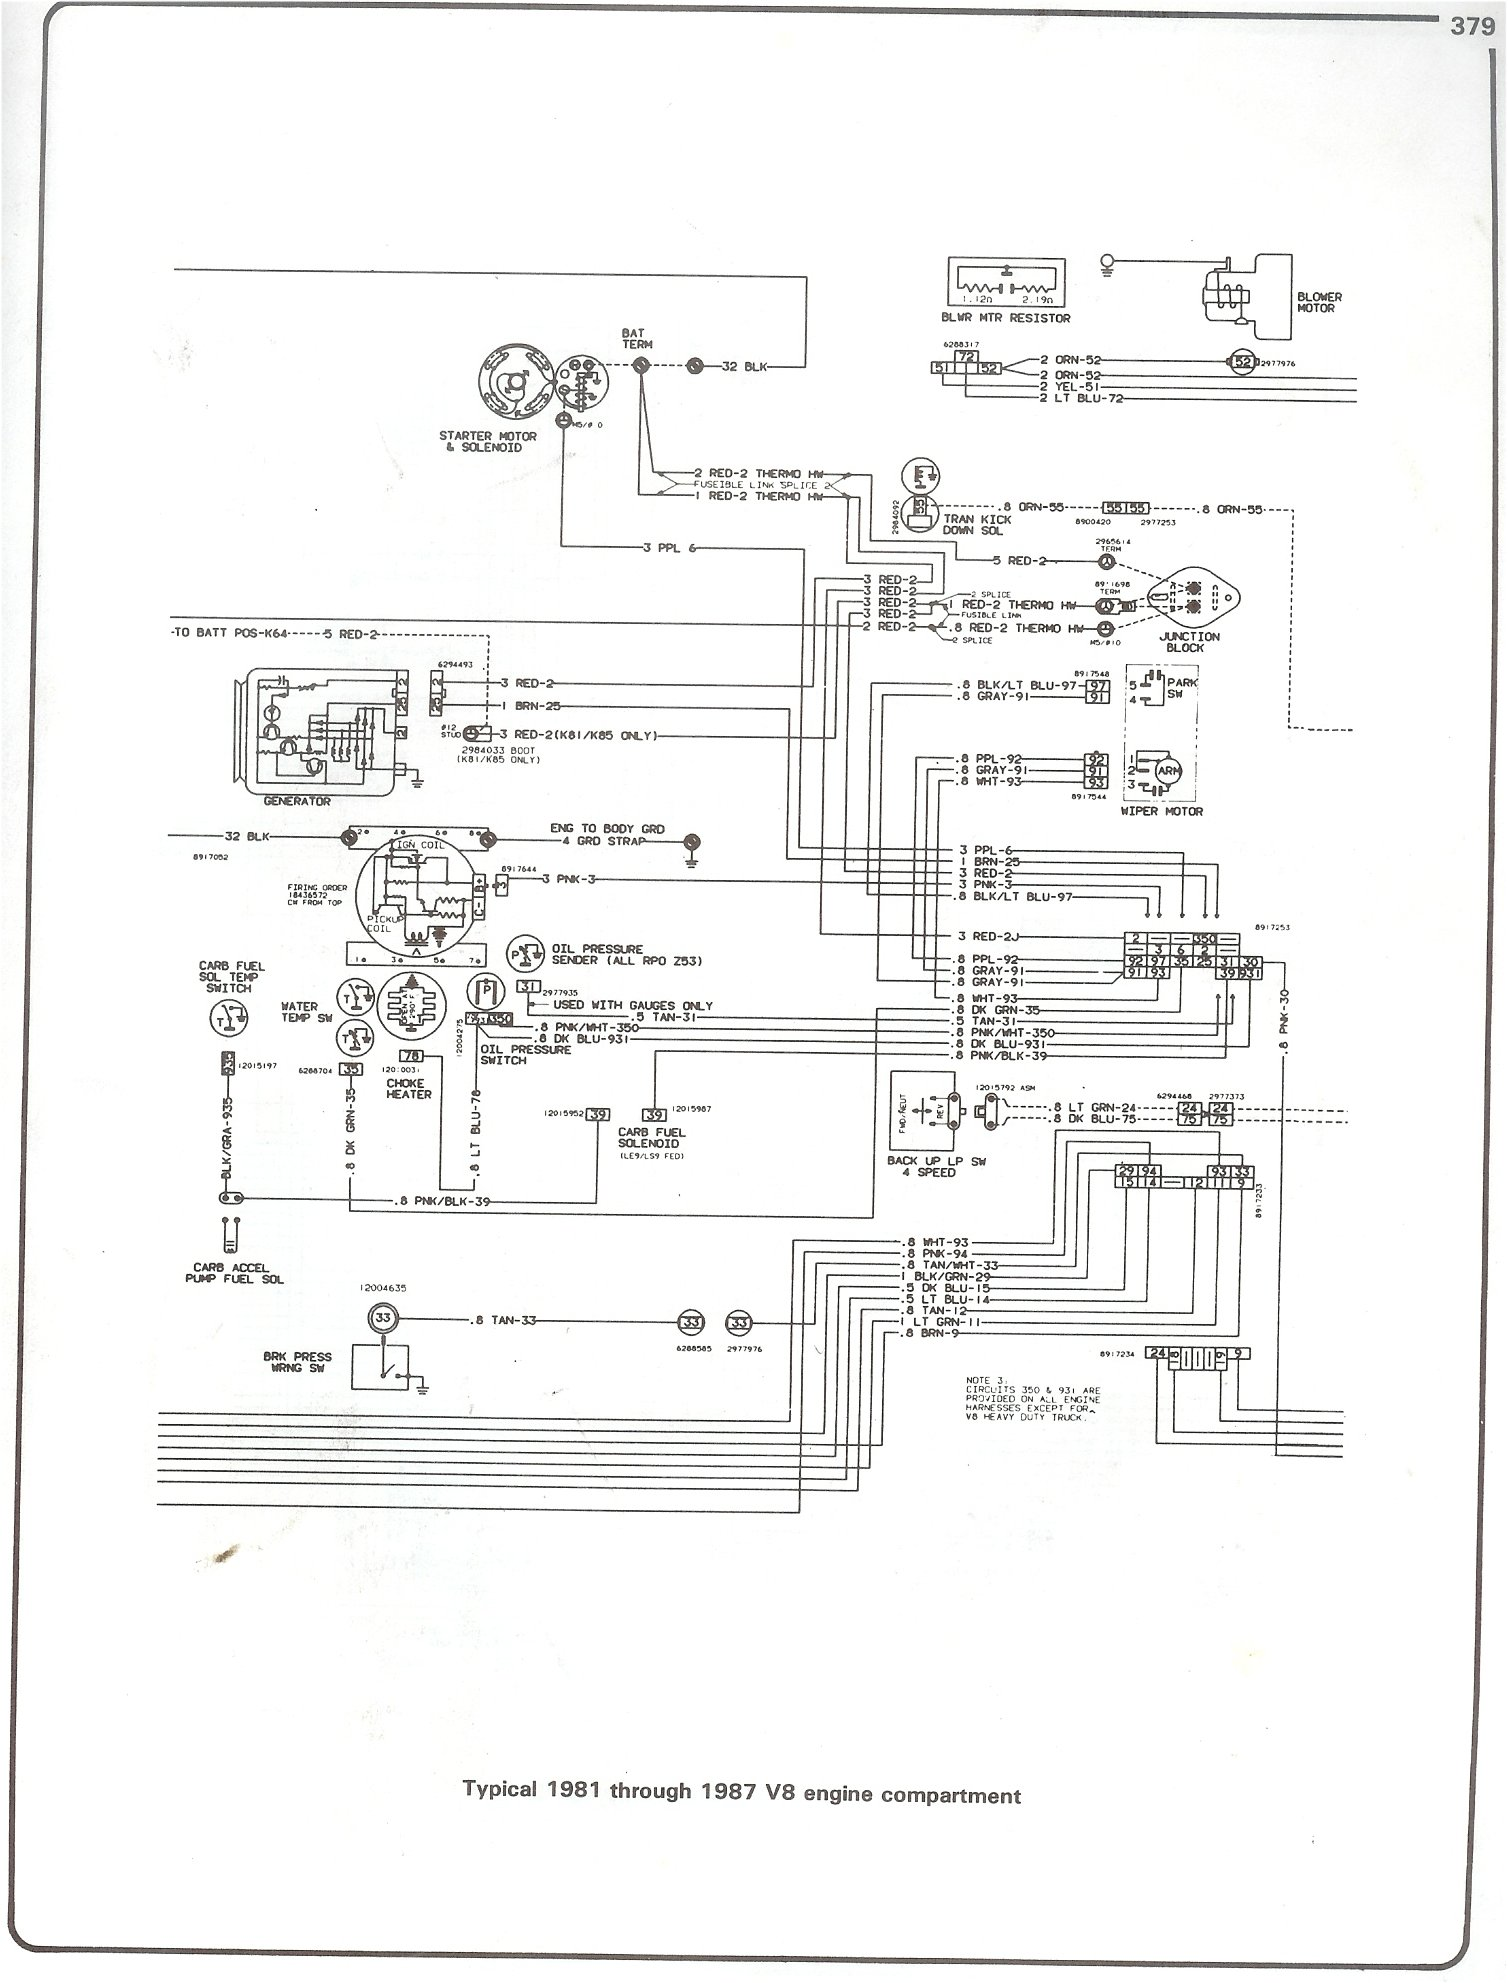 81 87_V8_engine complete 73 87 wiring diagrams c70 wiring diagram at alyssarenee.co